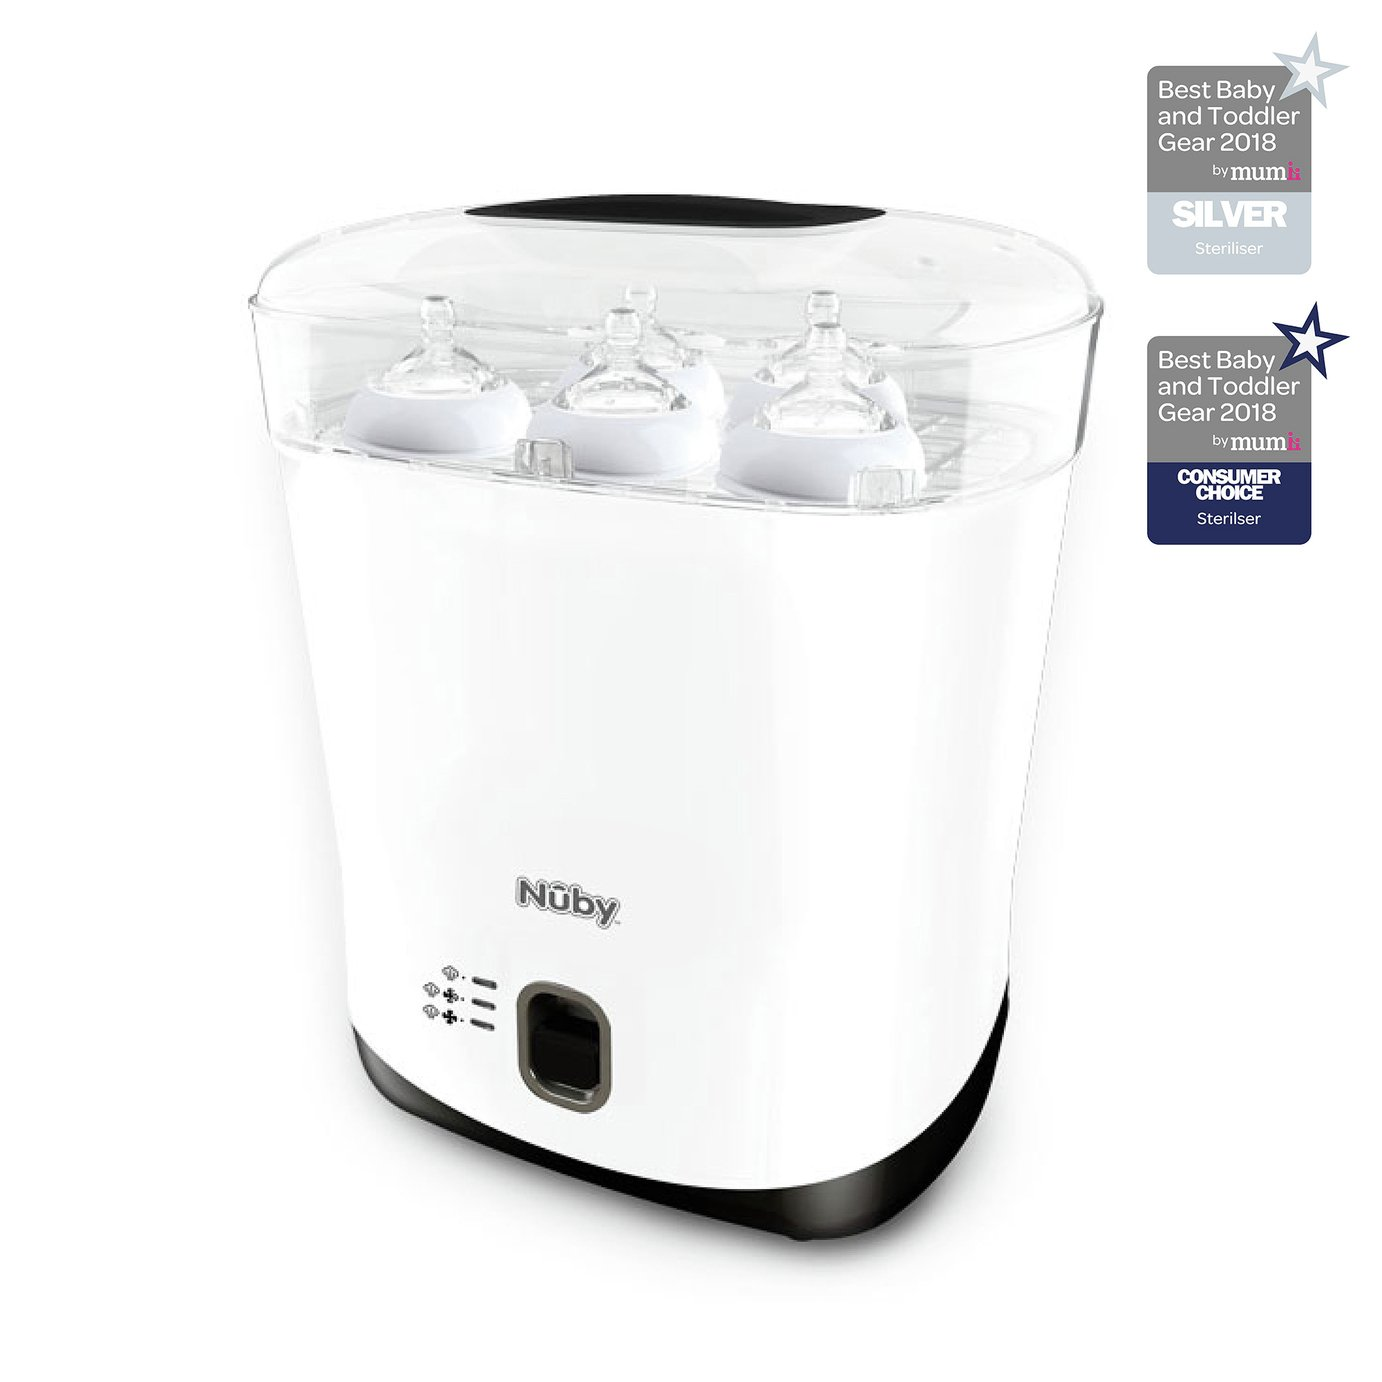 Nuby Electric Steam Steriliser and Dryer